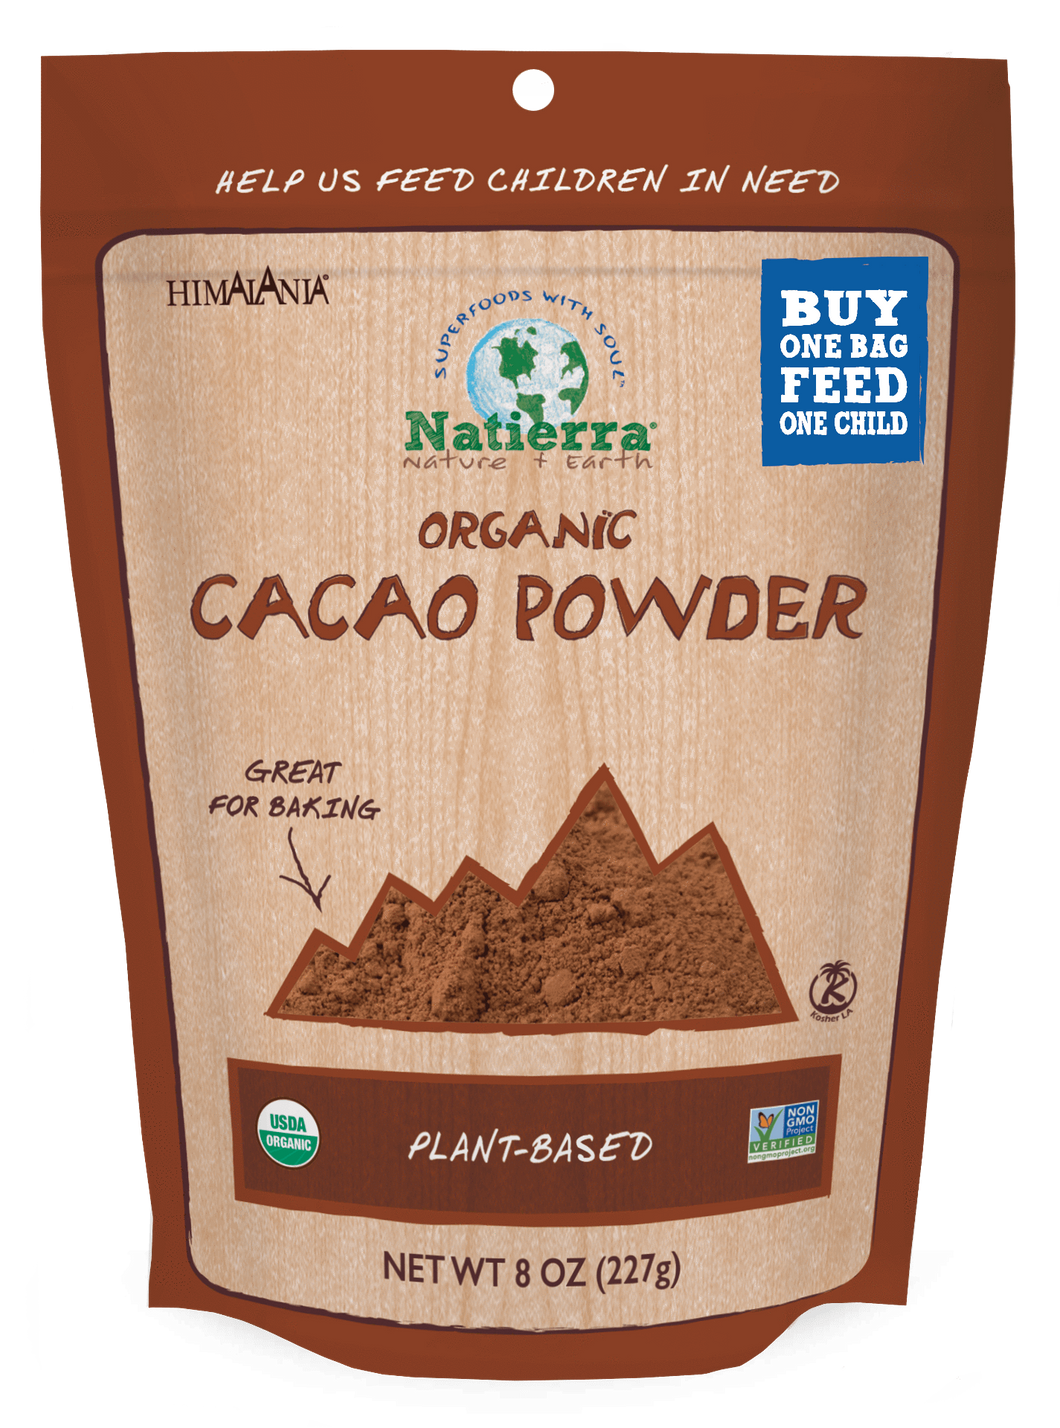 Natierra Organic Cacao Powder Bag NATCPO08 812907014741